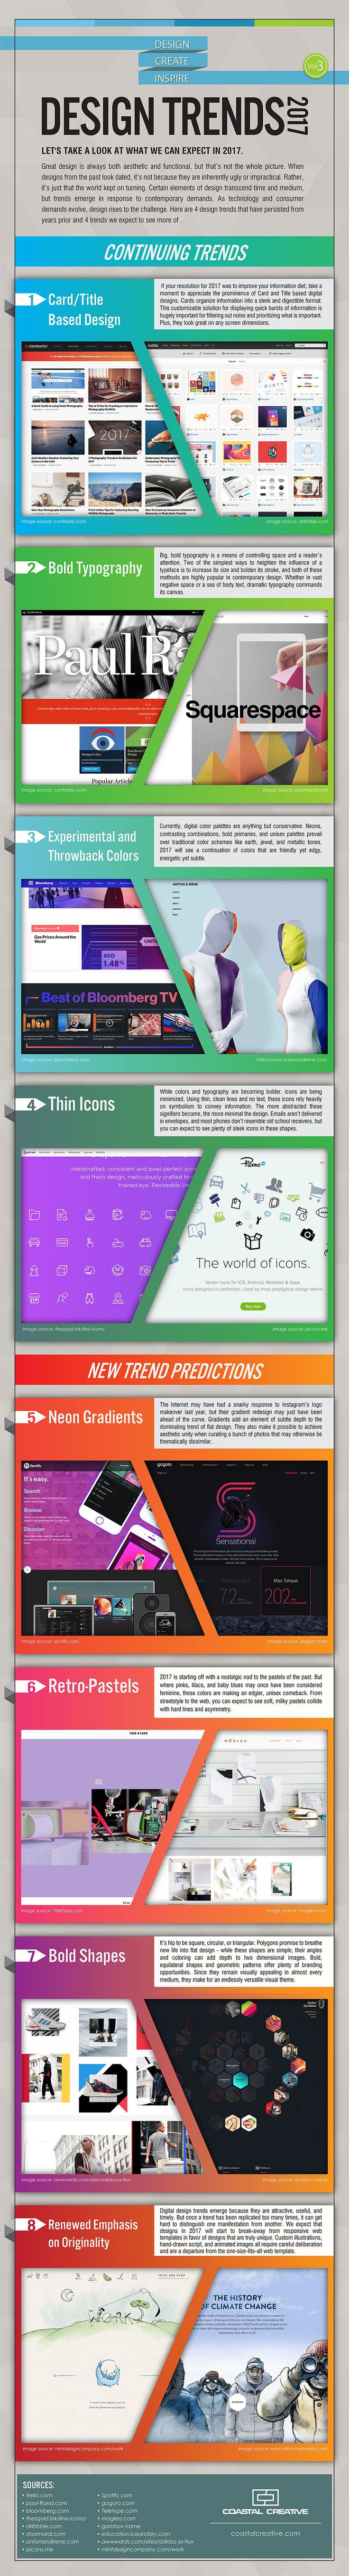 8 Design Trends That Should Shape Your 2017 Marketing Strategy [Infographic]